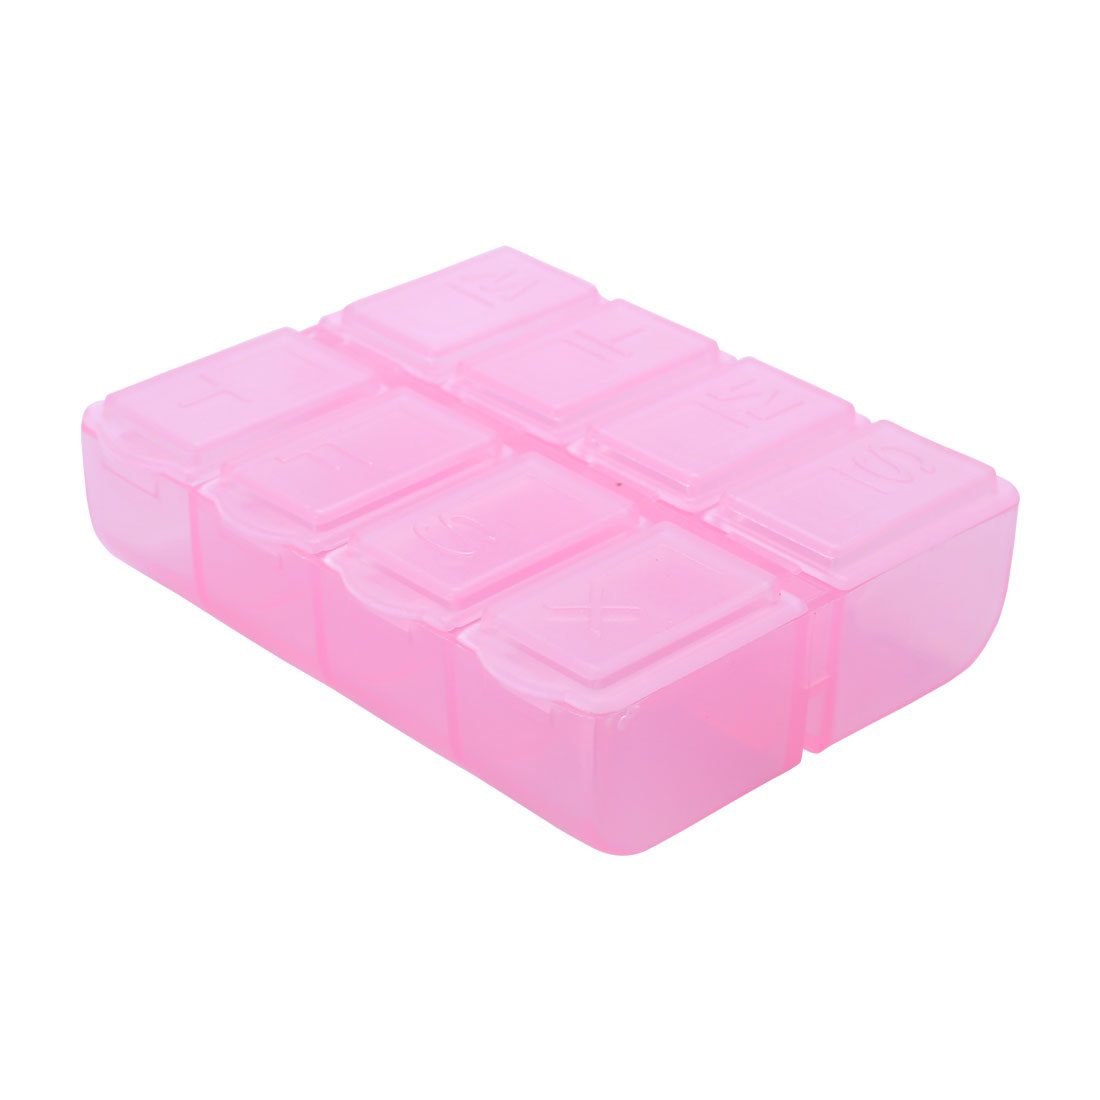 Clear Pink Plastic 8 Compartment Capsules Pill Organizer Box Case